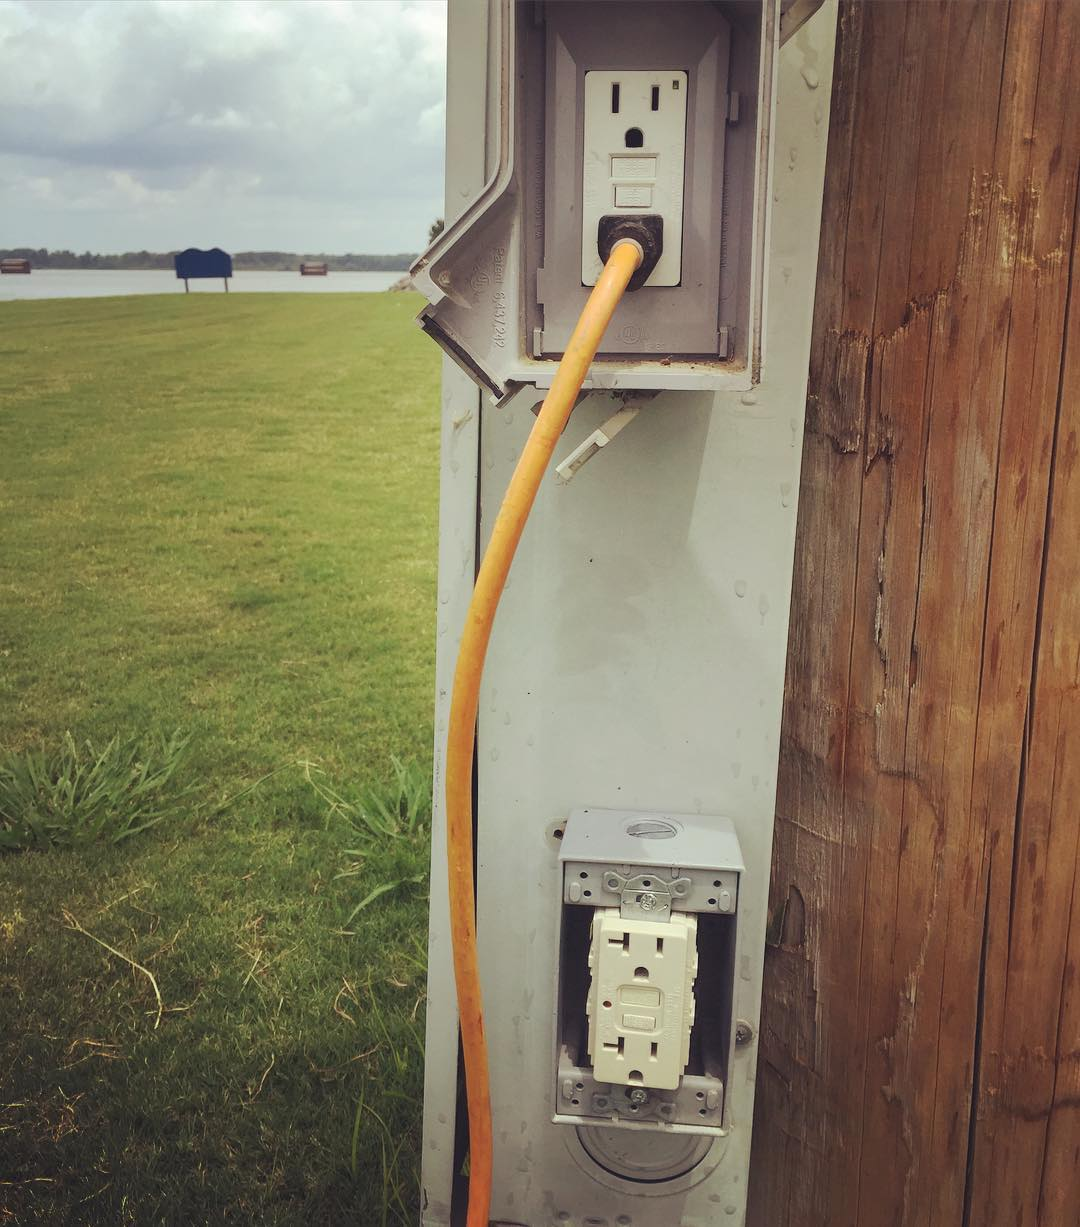 In the far away land of Alabama there are electrical outlets in public places such as parks, buildings and patios. Apparently they are not terrified that homeless people will charge their cell phones. People here don't believe us when we say that this doesn't happen where we come from